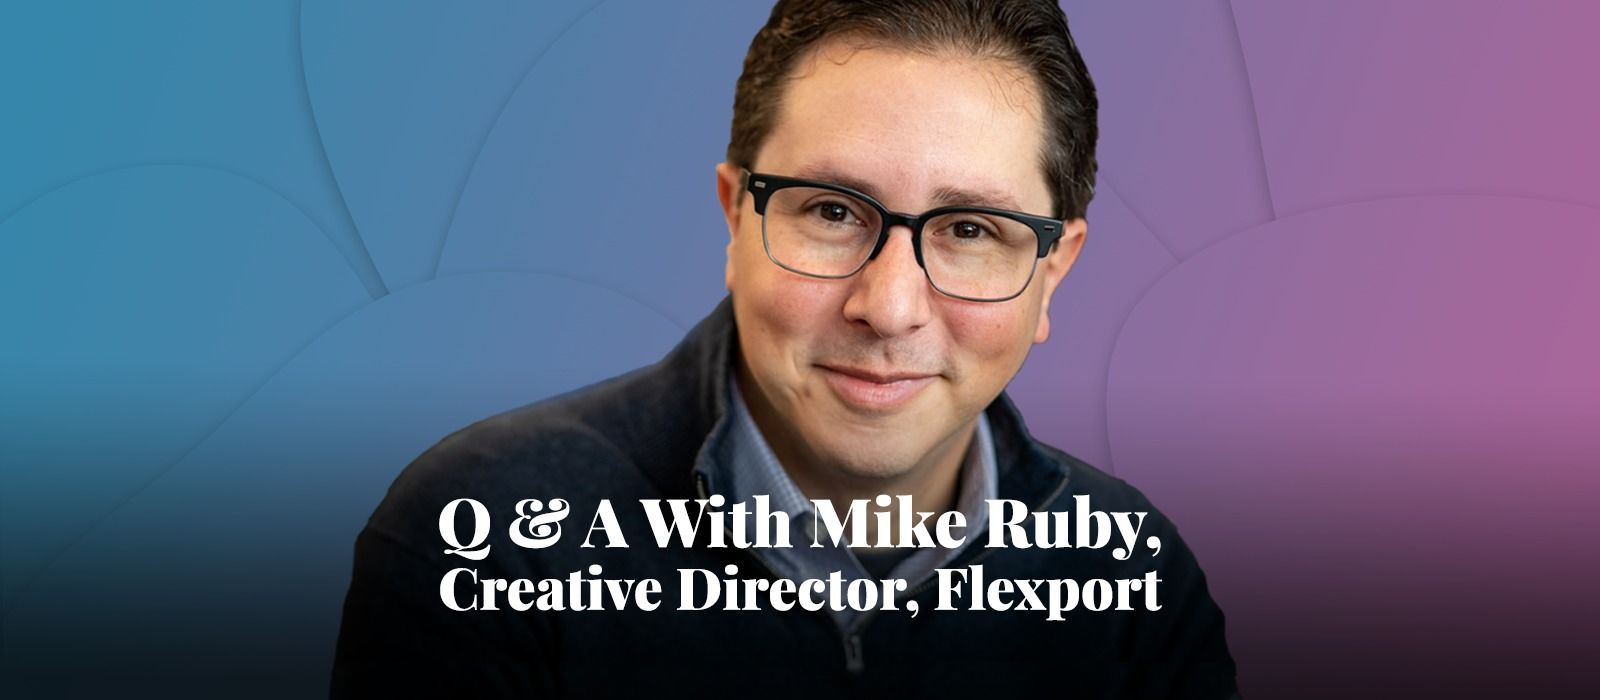 mike-ruby-